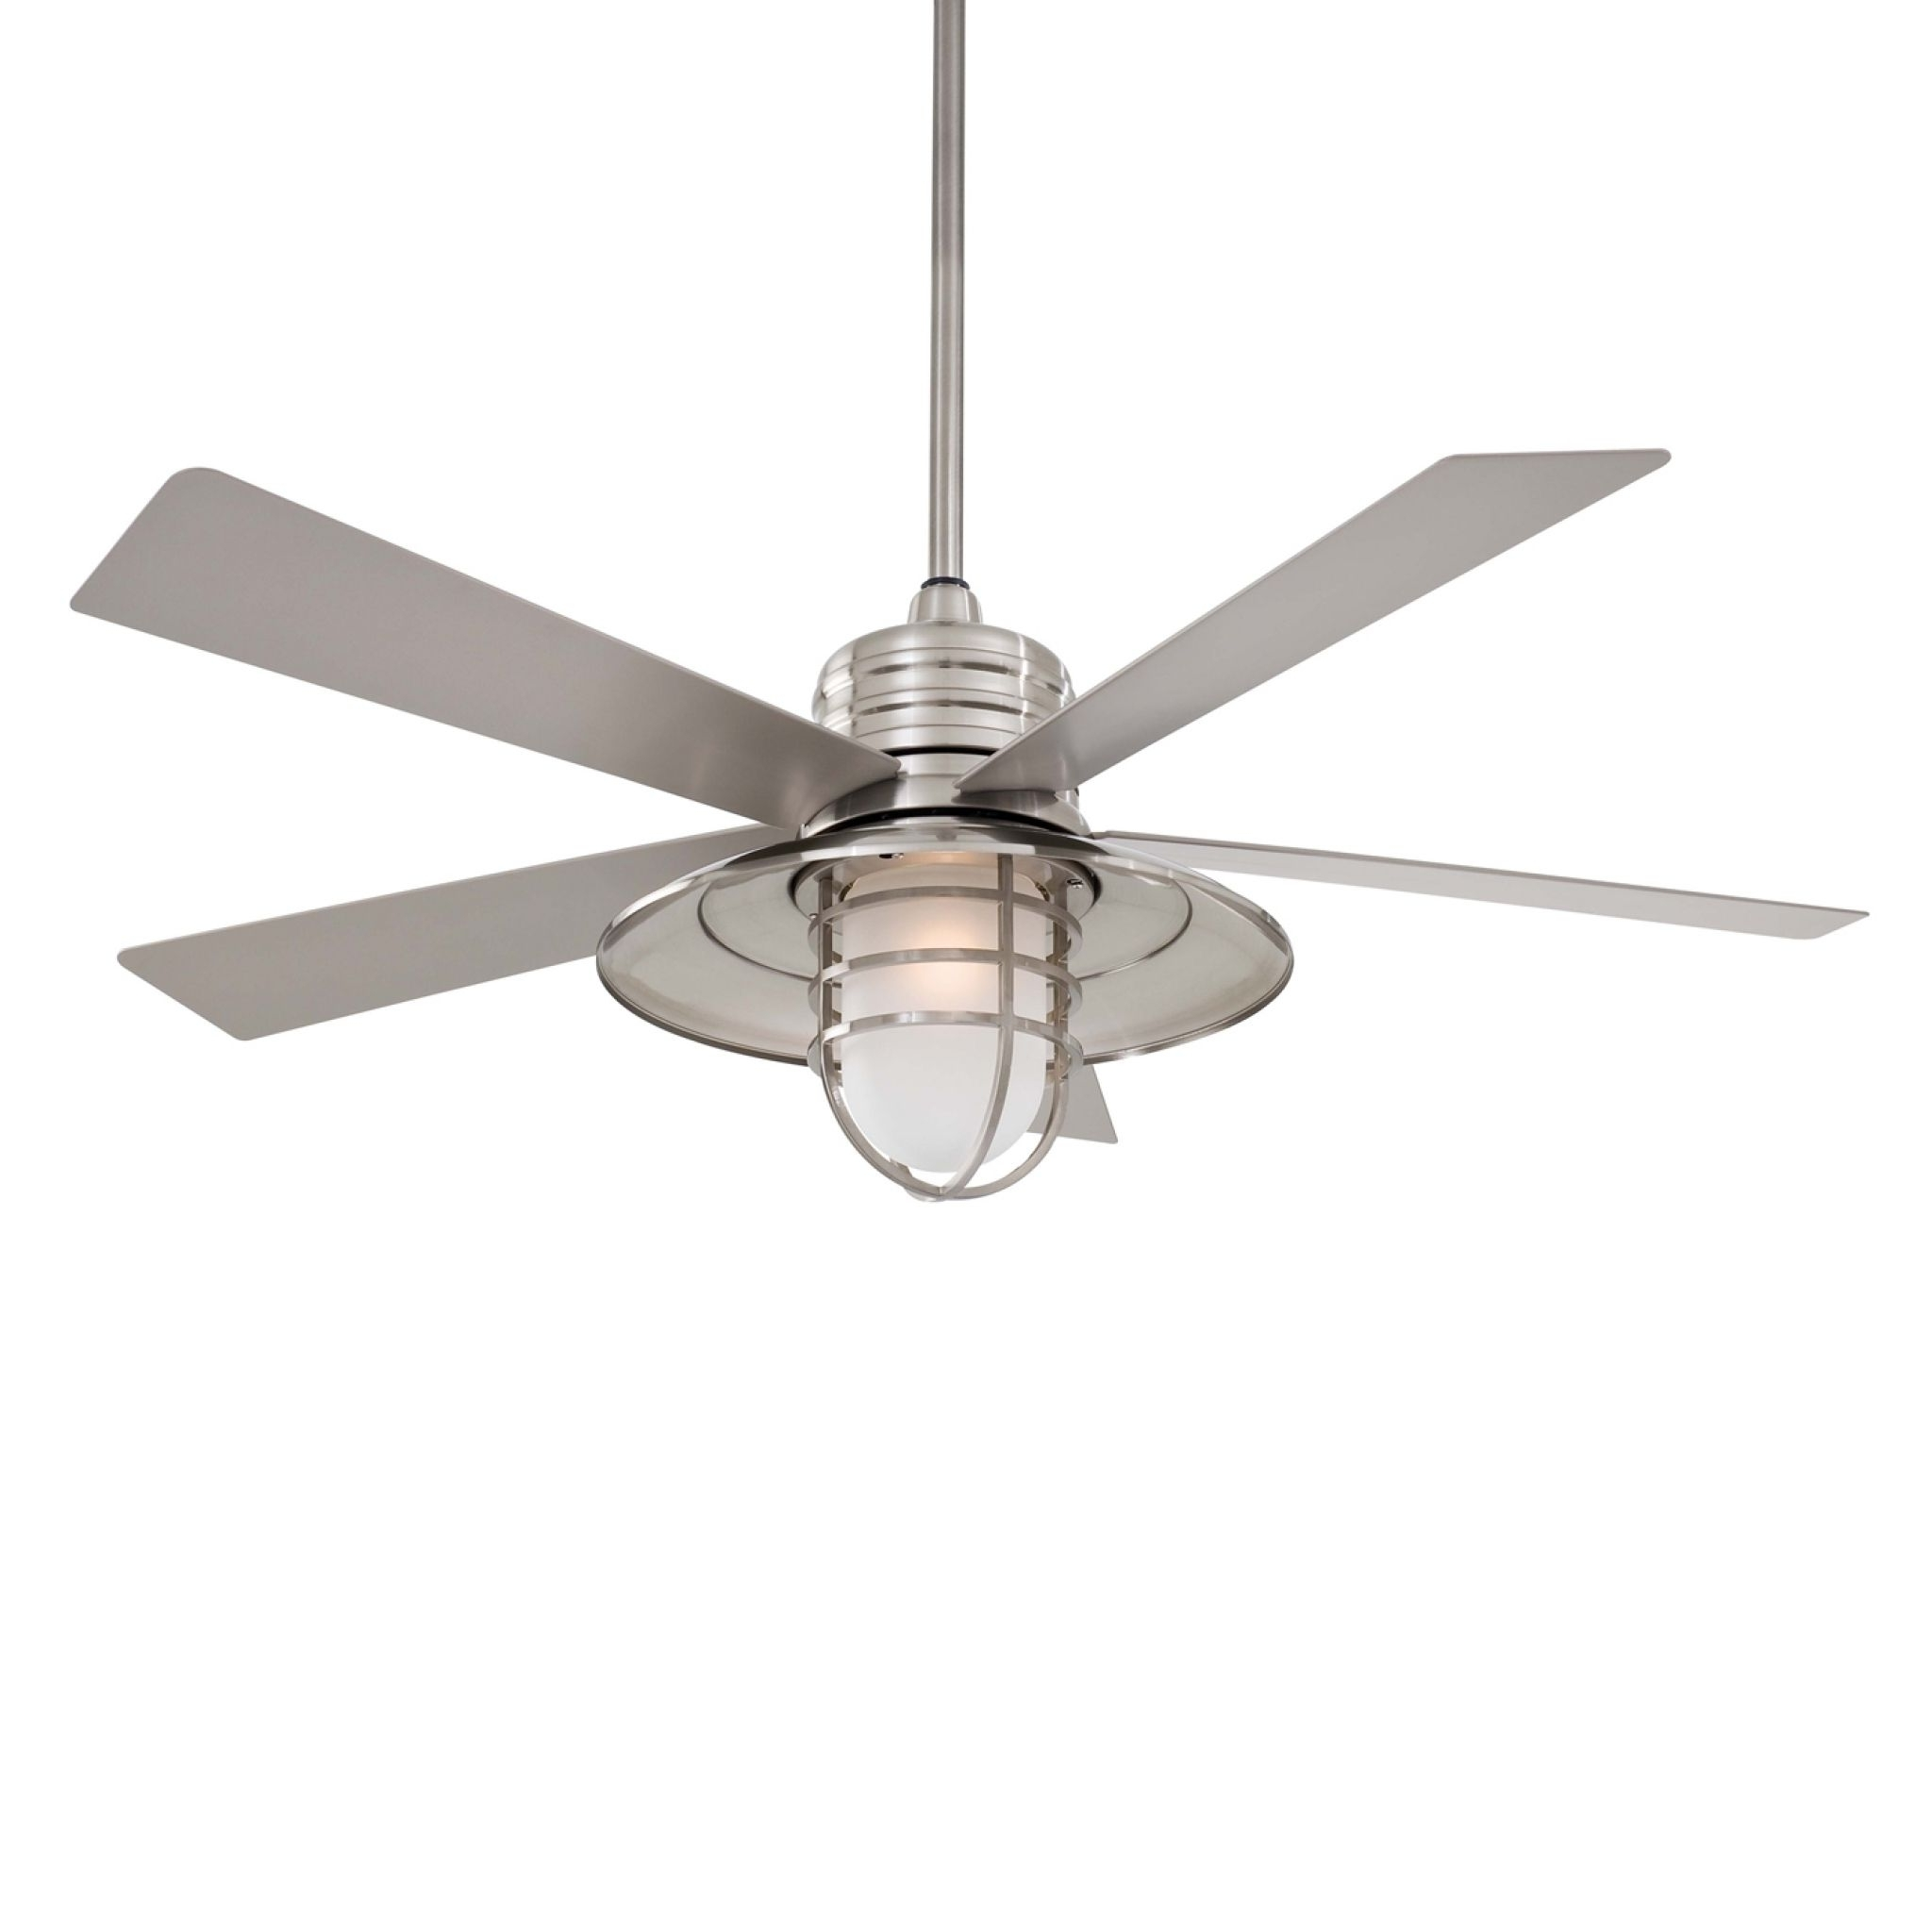 Mini Outdoor Ceiling Fans With Lights Throughout Preferred Small Outdoor Ceiling Fan With Light – Best Paint For Interior Walls (View 6 of 20)